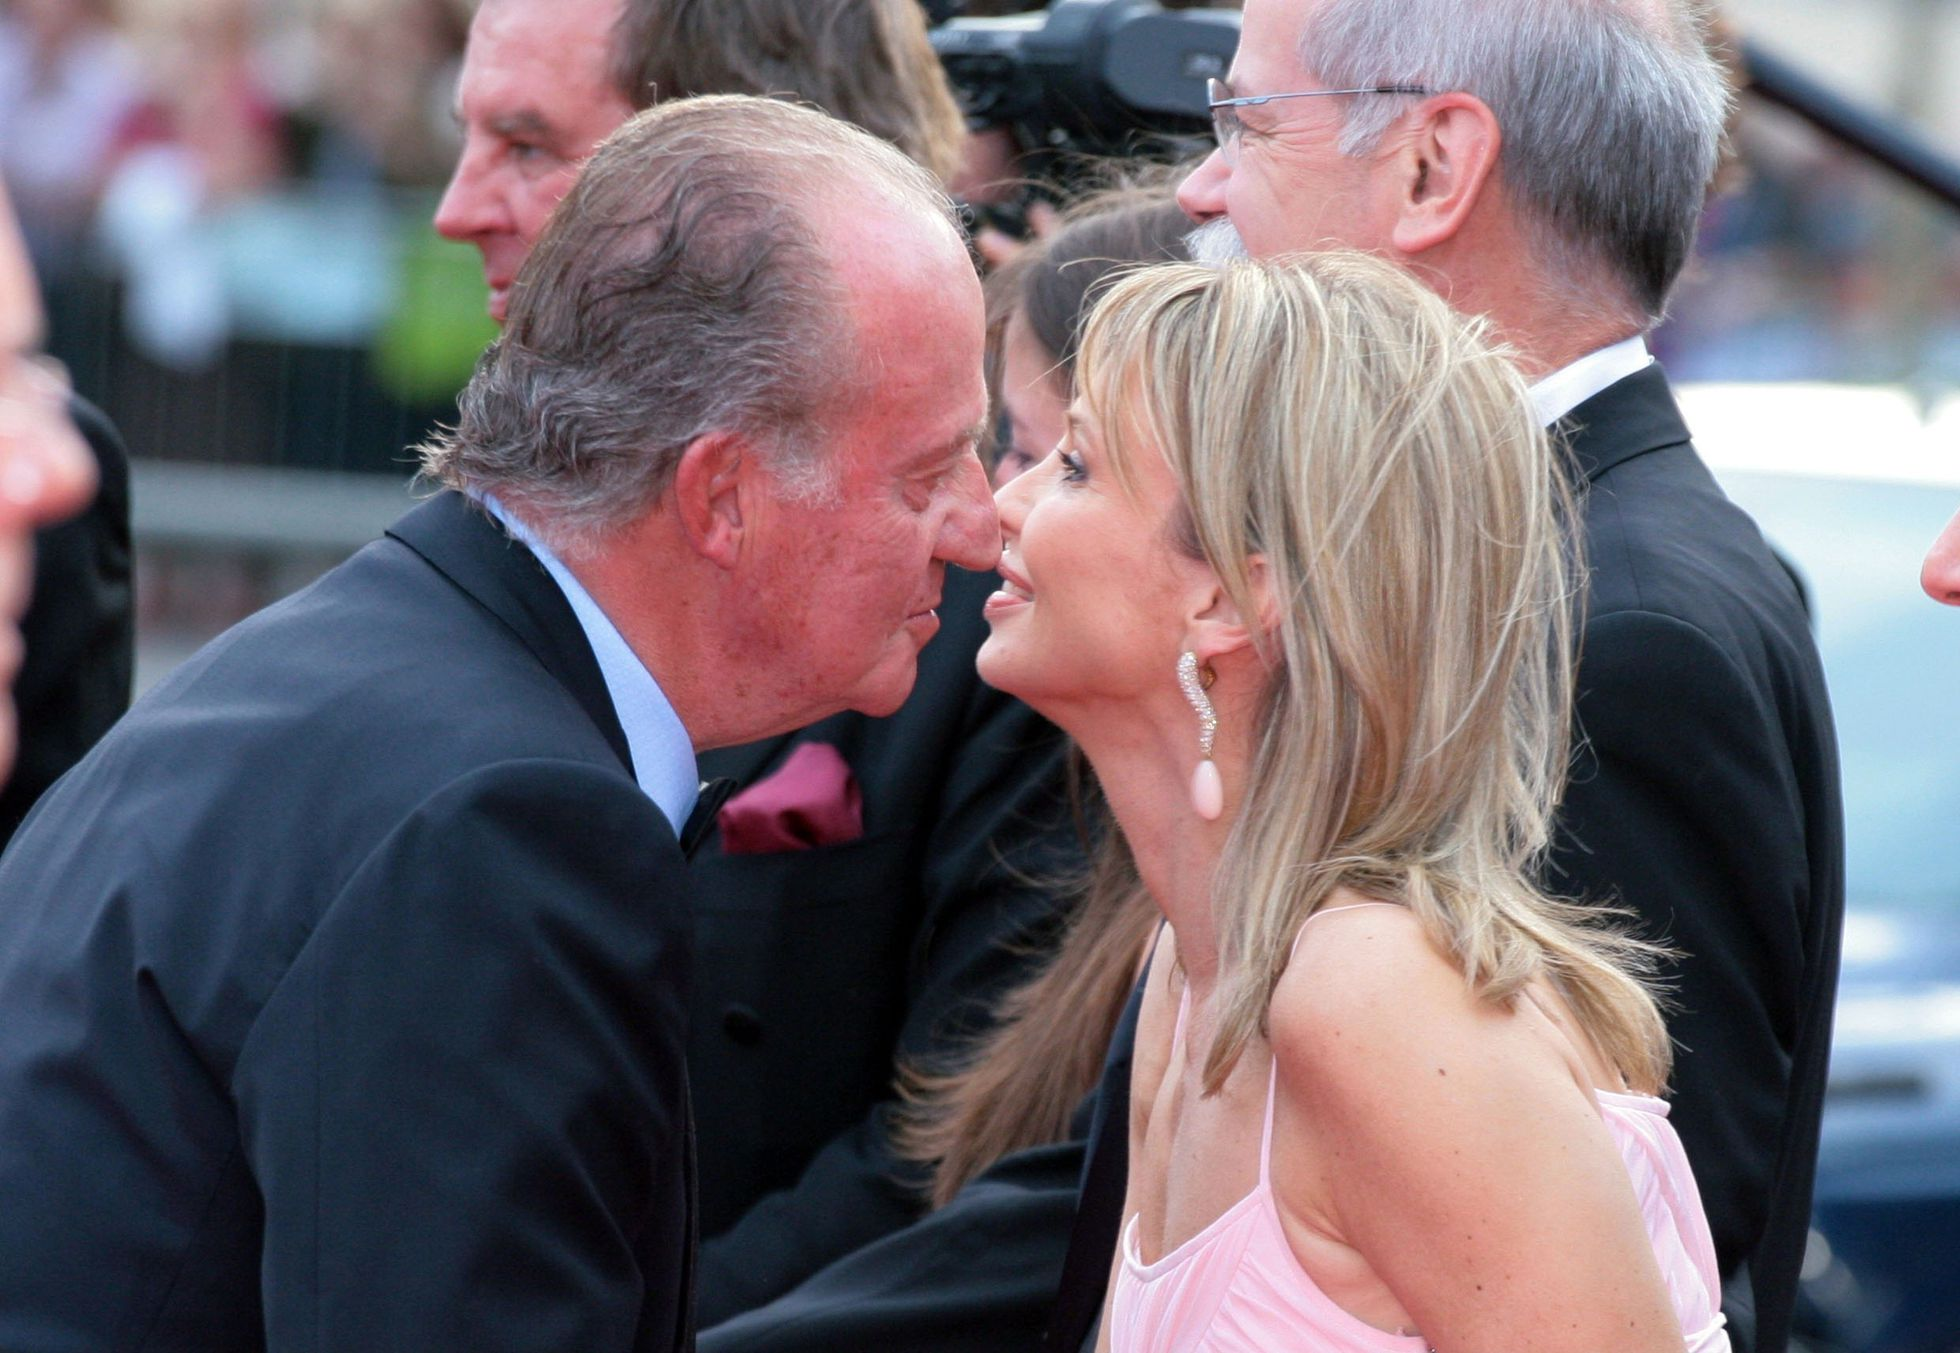 Spain's emeritus king Juan Carlos I sued by ex-lover over harassment claims